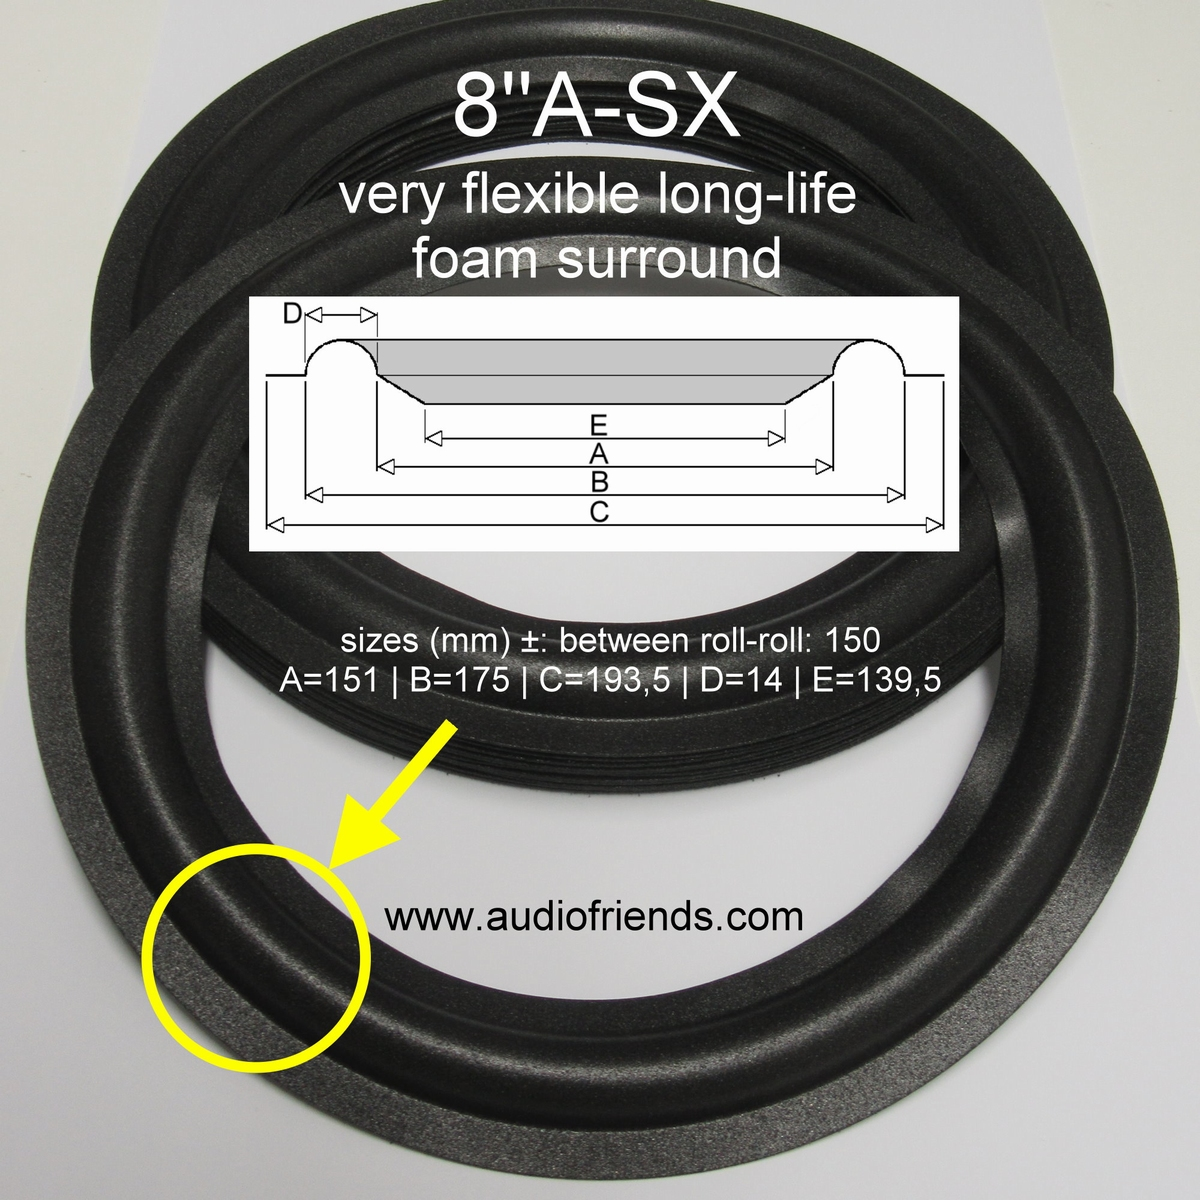 Speaker repair - Genuine-, special manufactured-, and other